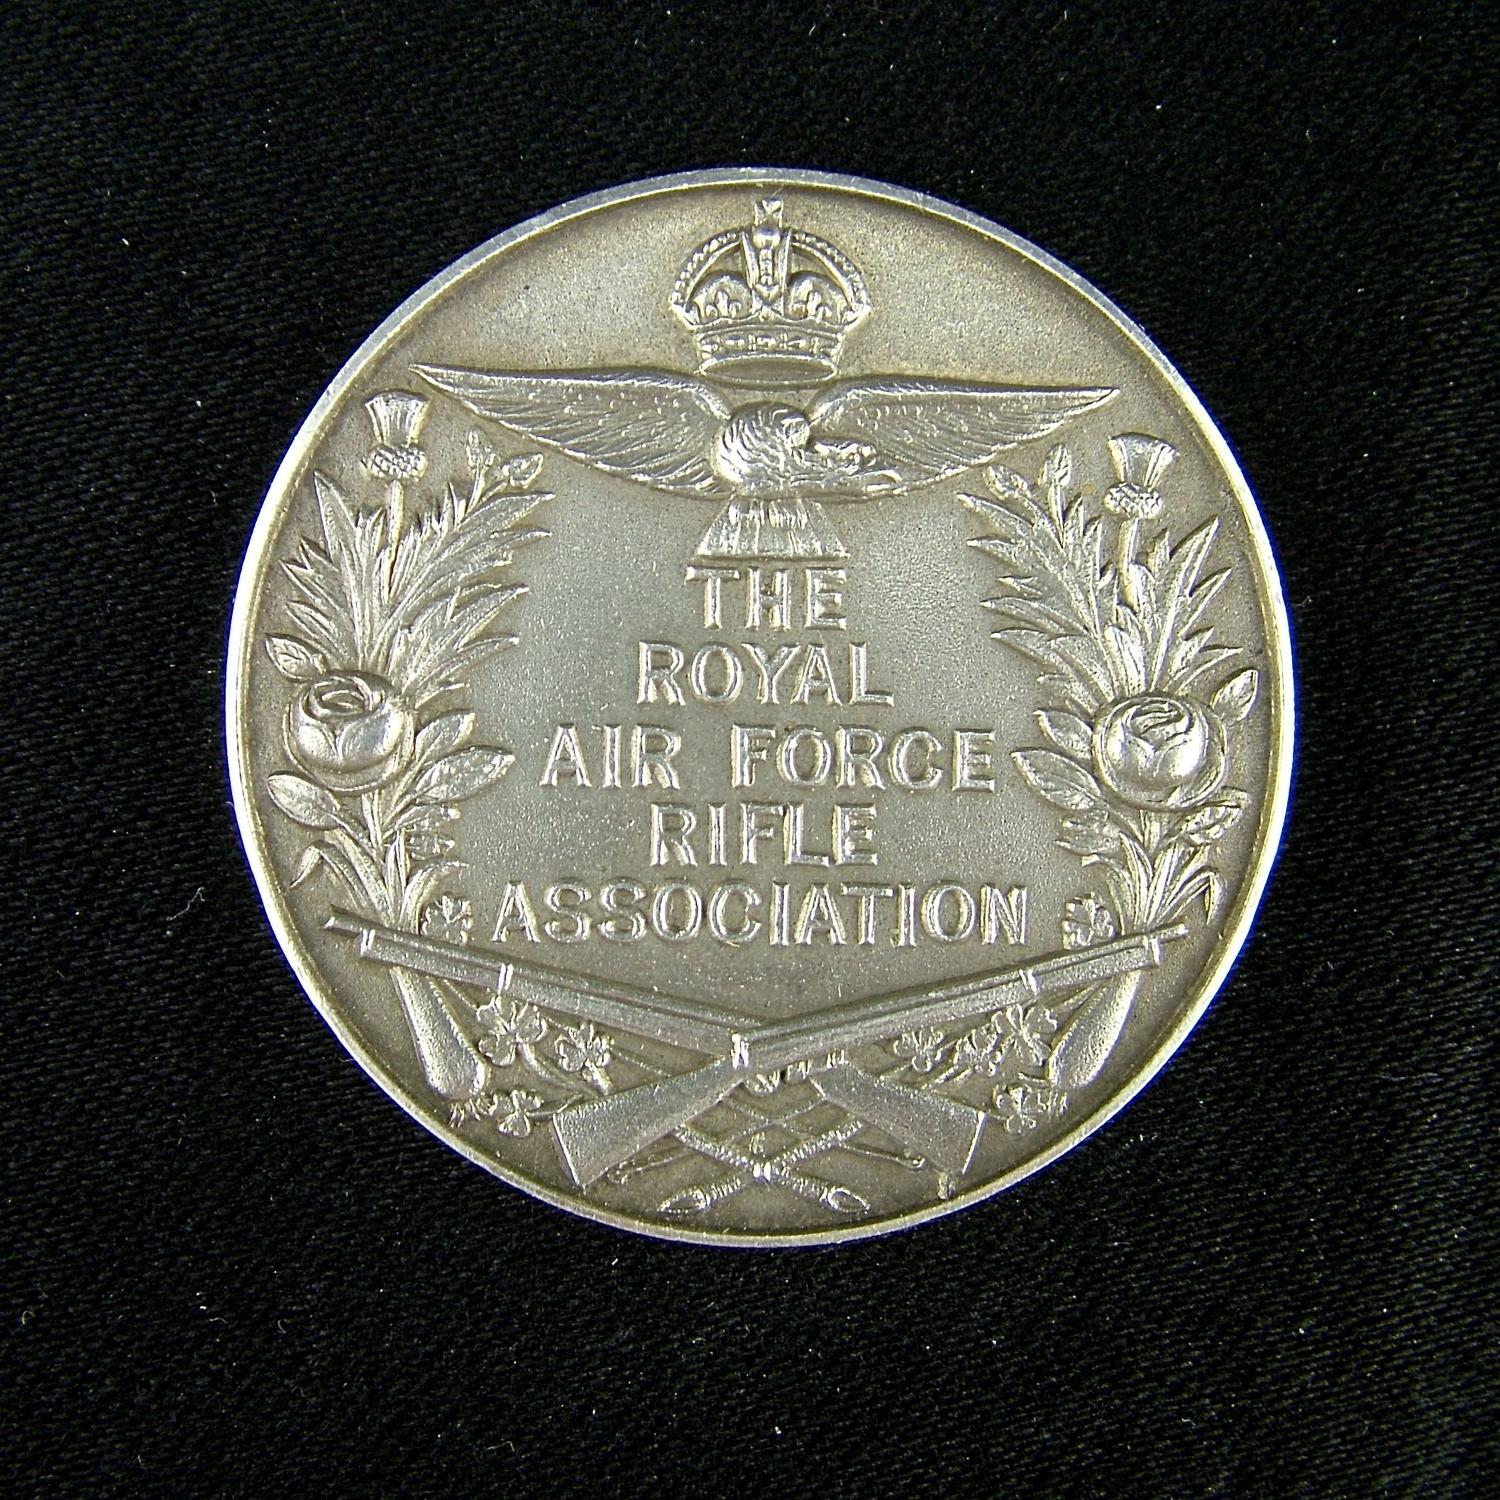 RAF rifle association medal